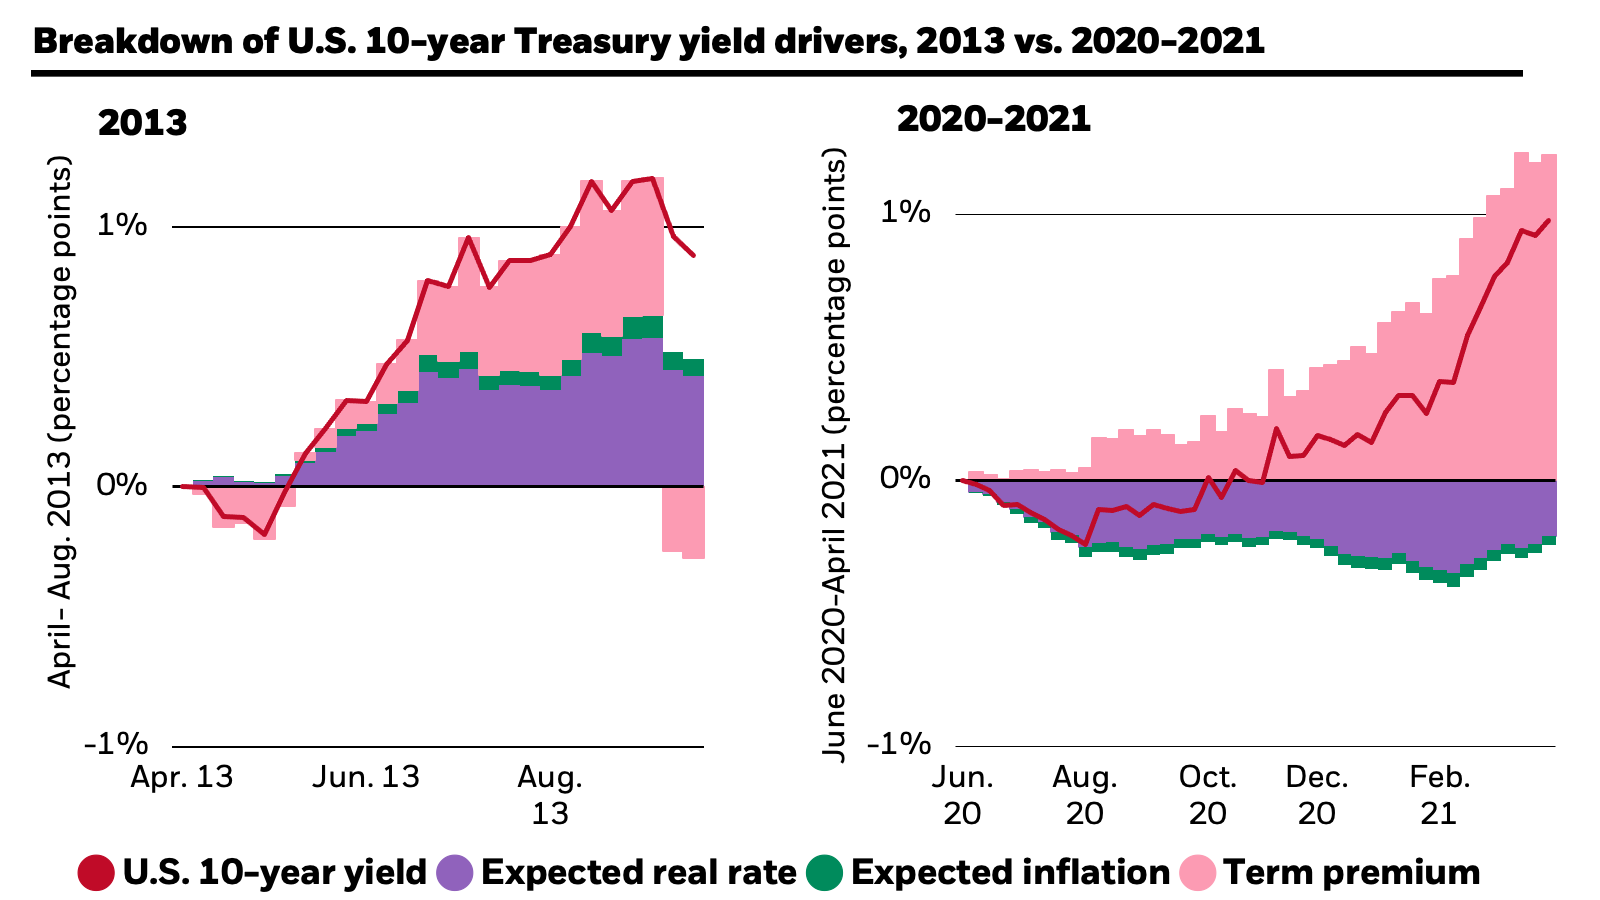 Breakdown of U.S. 10-year Treasury yield drivers: This chart shows that between 2020-2021, term premium has been the main driver of U.S. 10-year Treasury yields. This is in stark contrast to the 2013 taper tantrum, when the breakdown of yields was attributed mostly to the expected real rate.